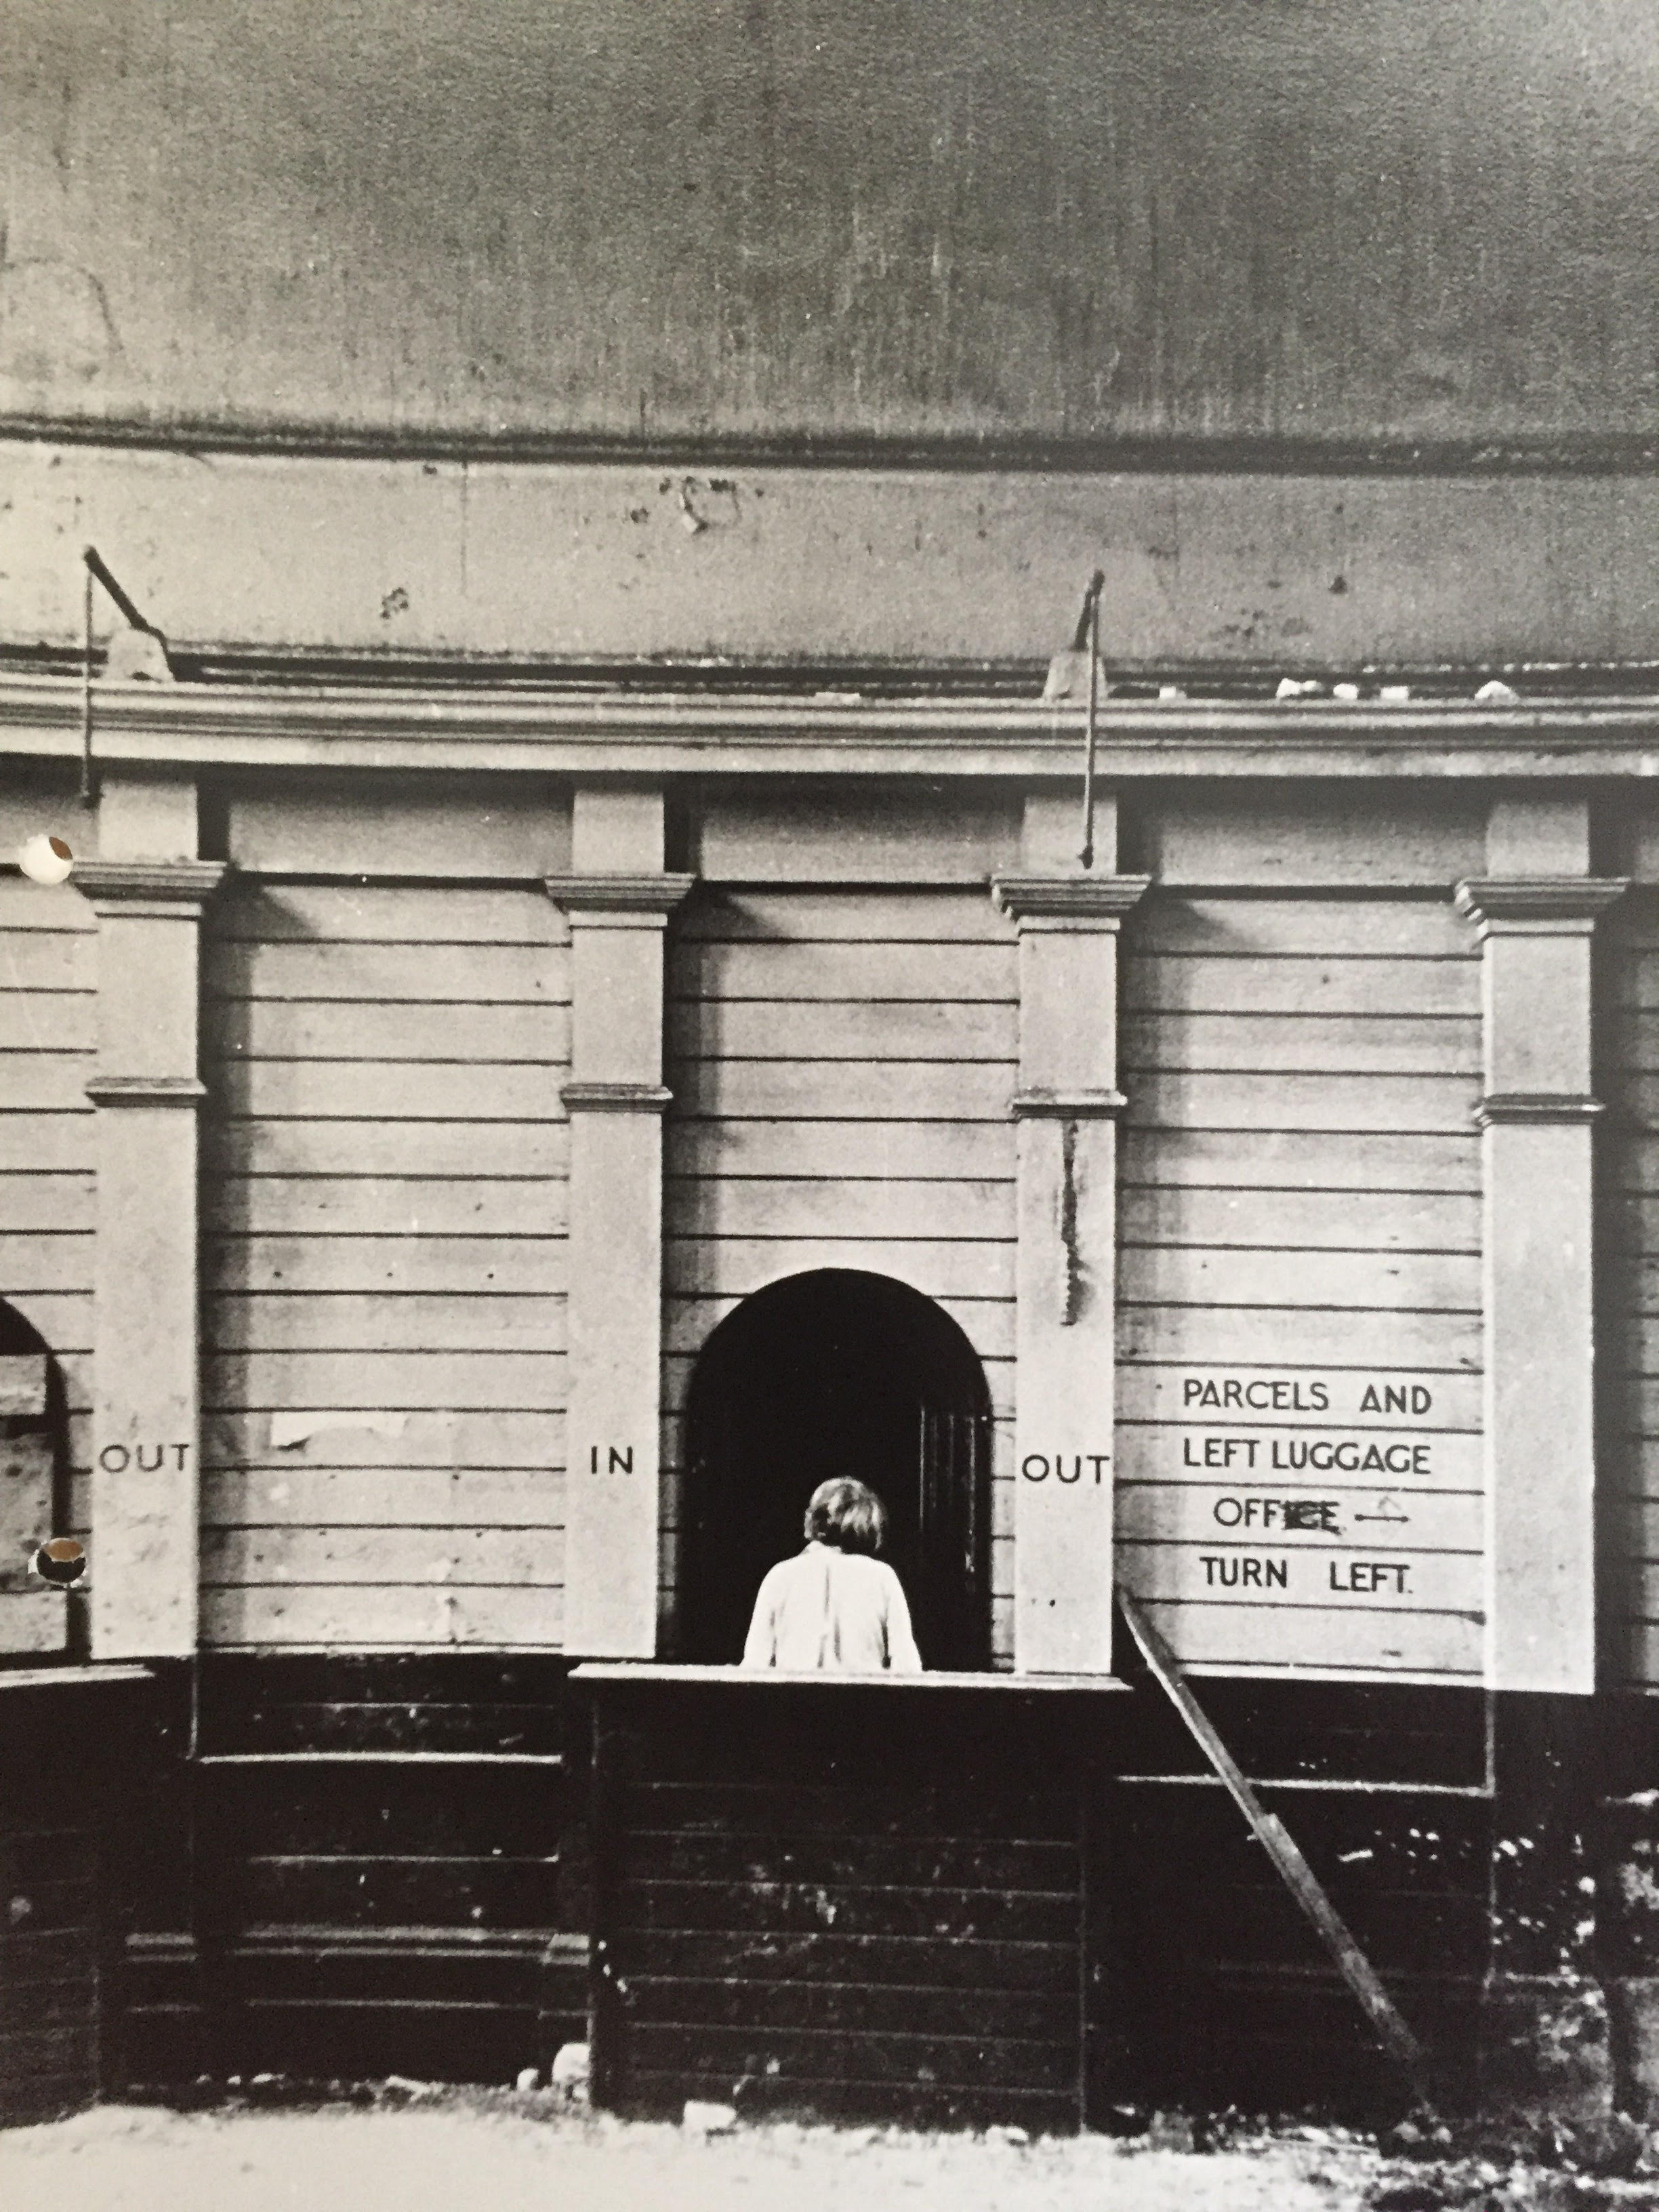 The old booking hall at Green Park Station, Bath photographed long after the last train and passengers had left.